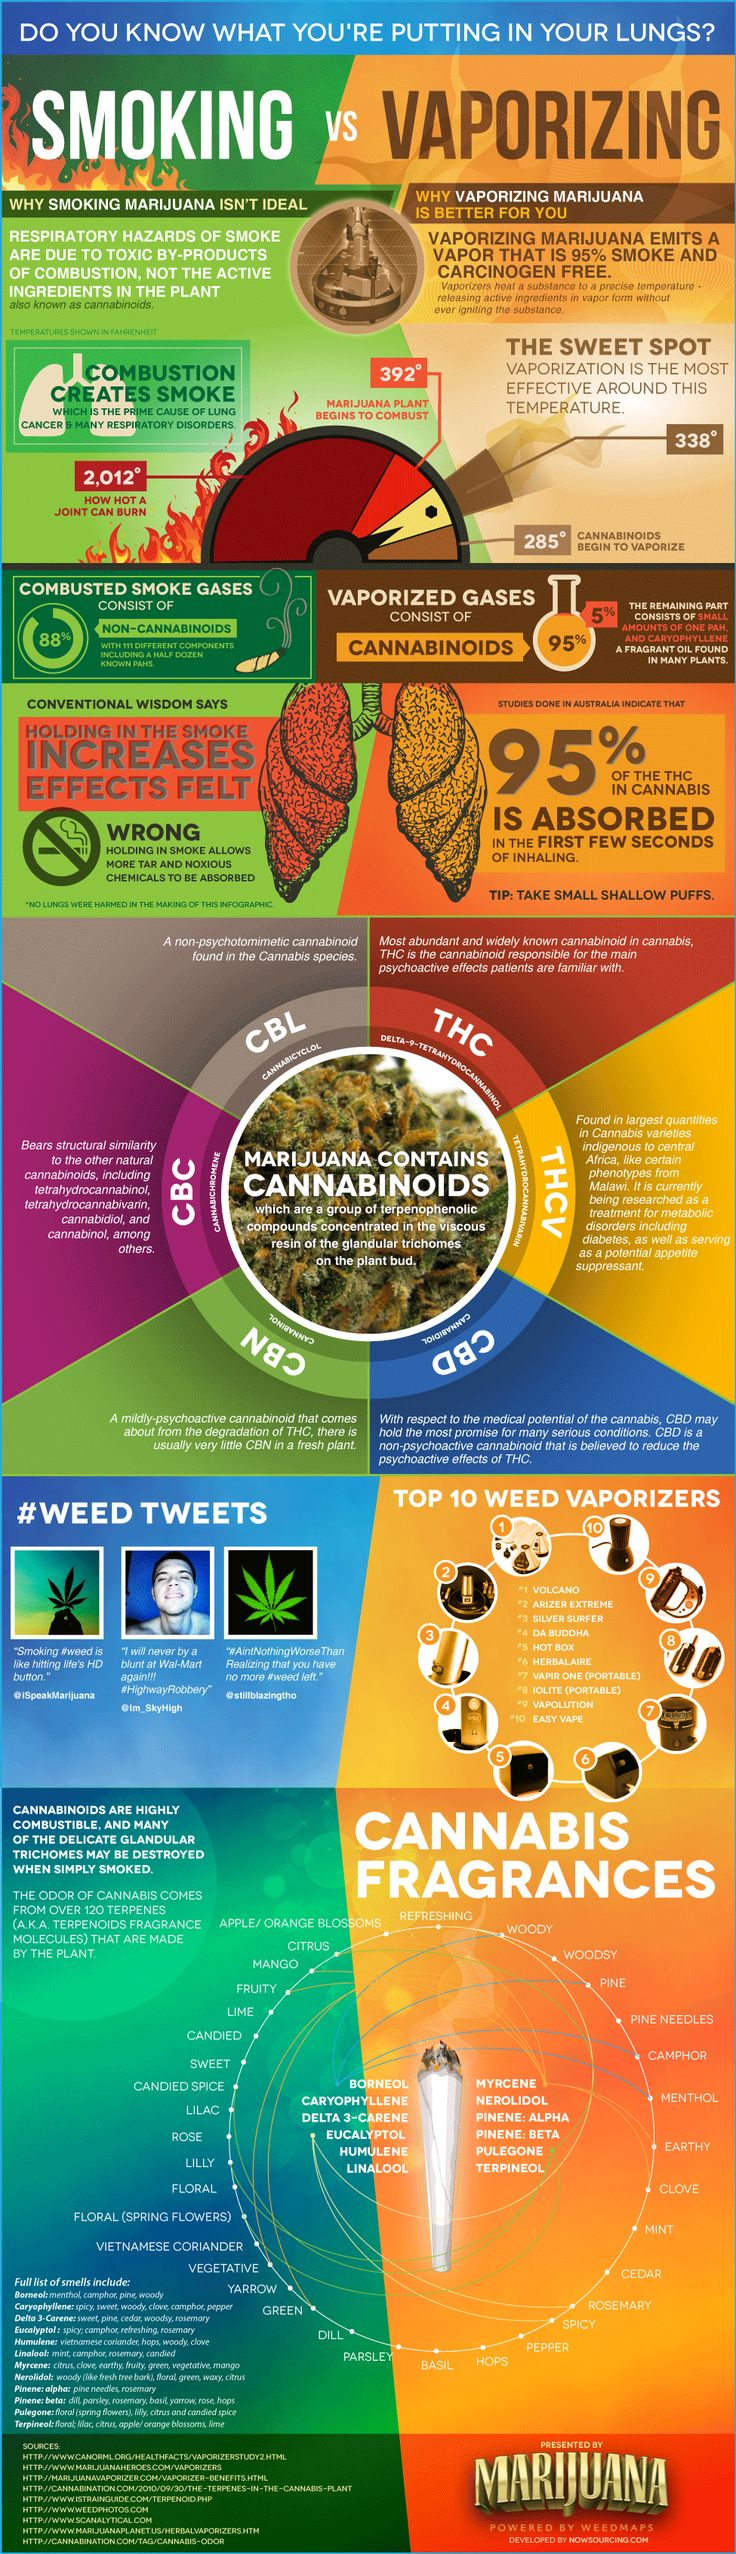 Smoking marijuana vs vaporizing marijuana infographic